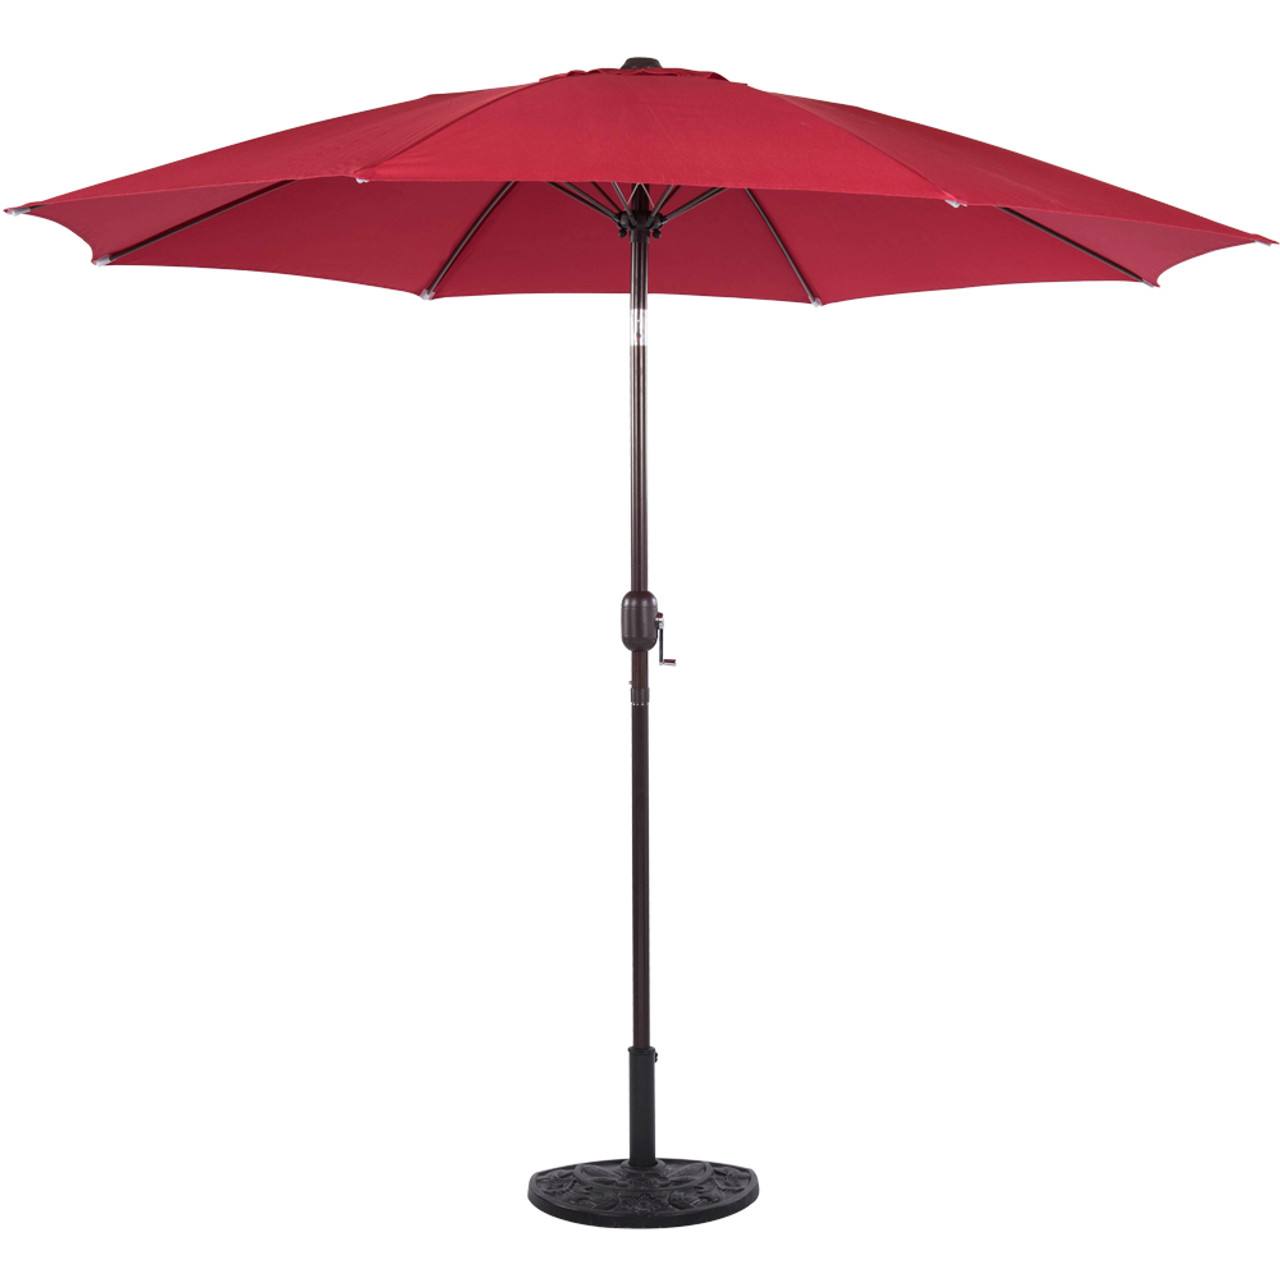 Awesome 9 Feet Aluminum Patio Umbrella With Crank And Push Button Tilt(Red)